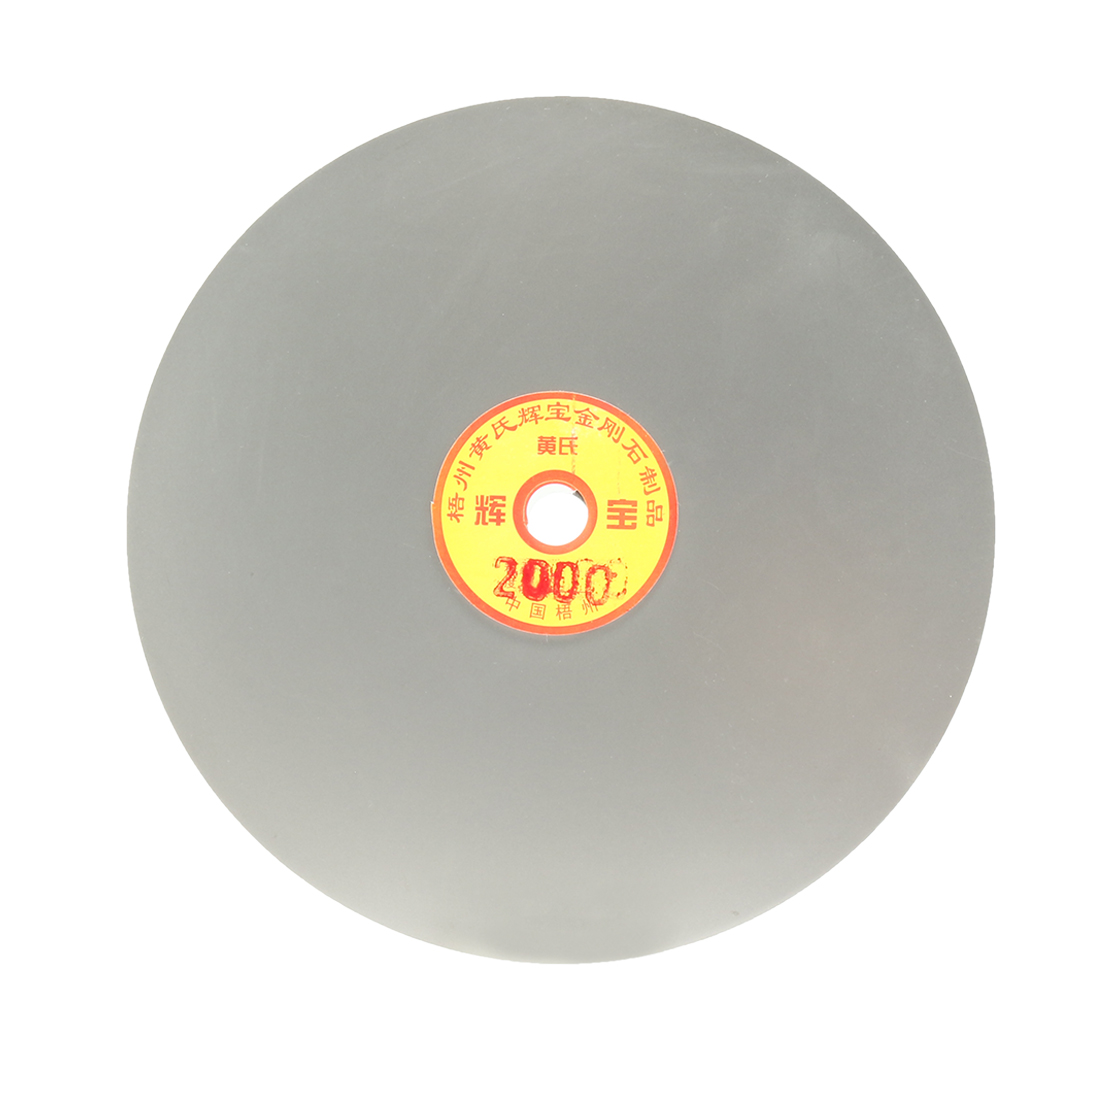 180mm 7-inch Grit 2000 Diamond Coated Flat Lap Disk Wheel Grinding Sanding Disc